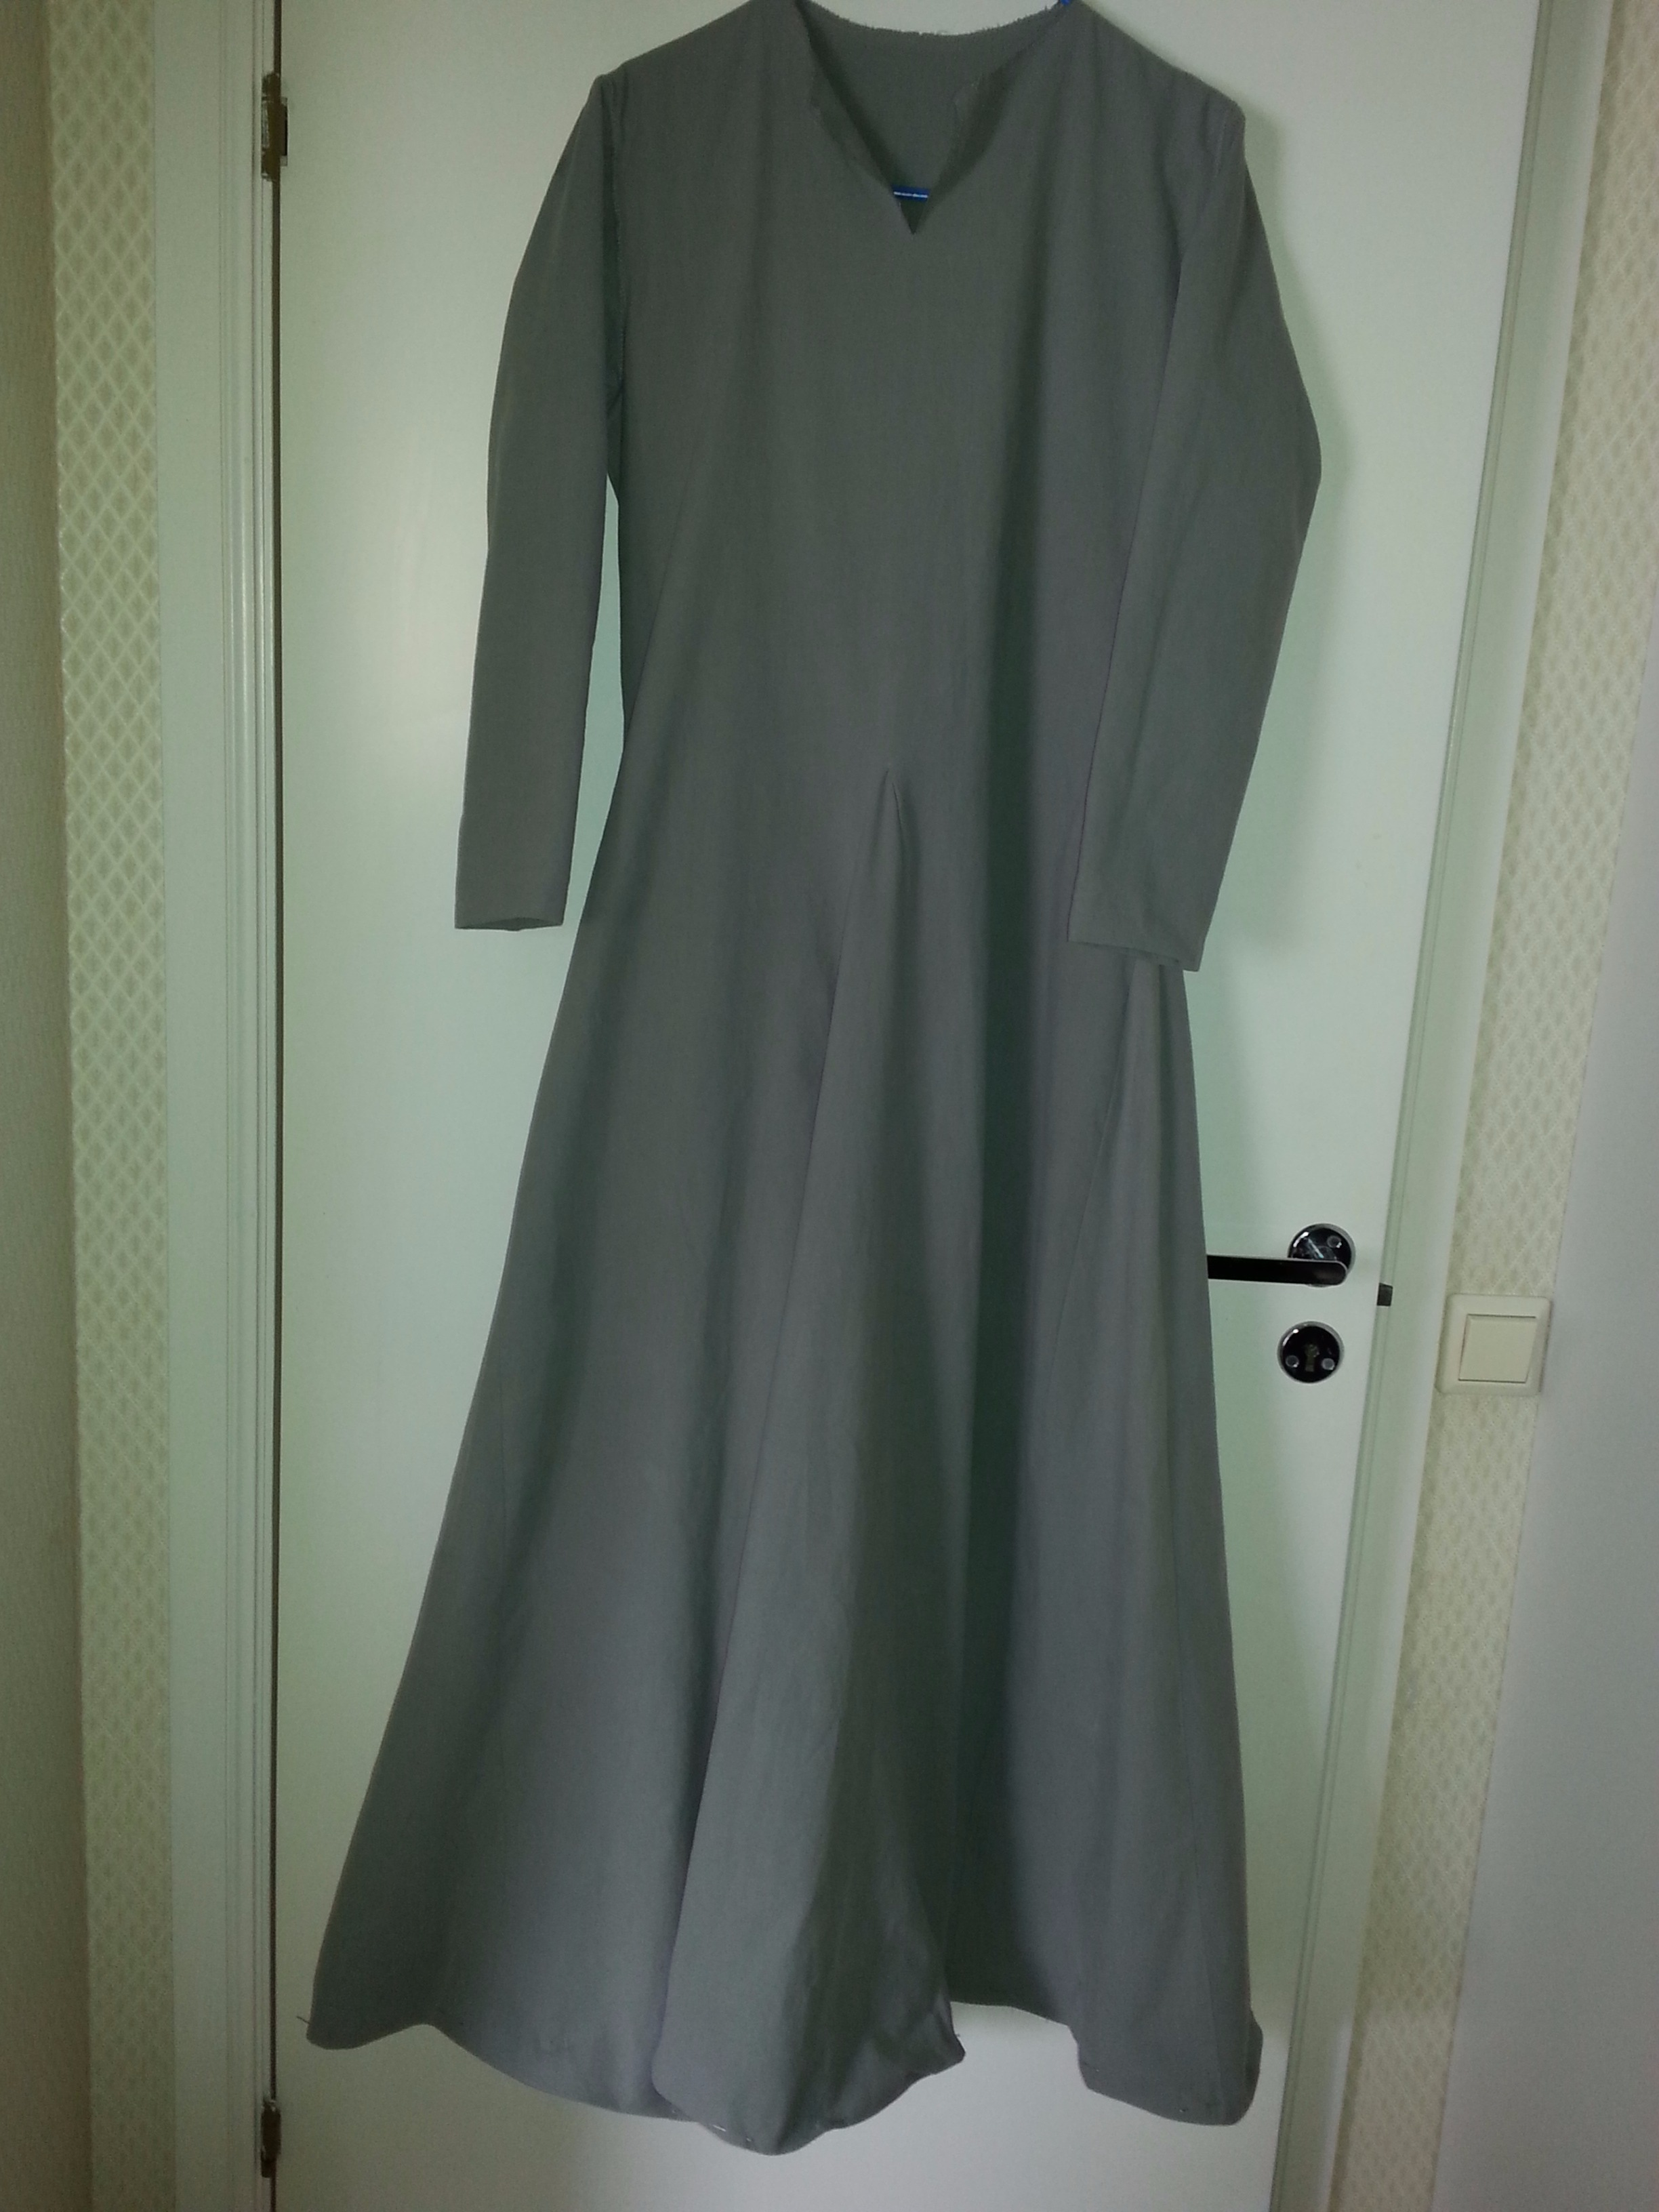 Picture of Viking Underdress or Tunic From a Sheet